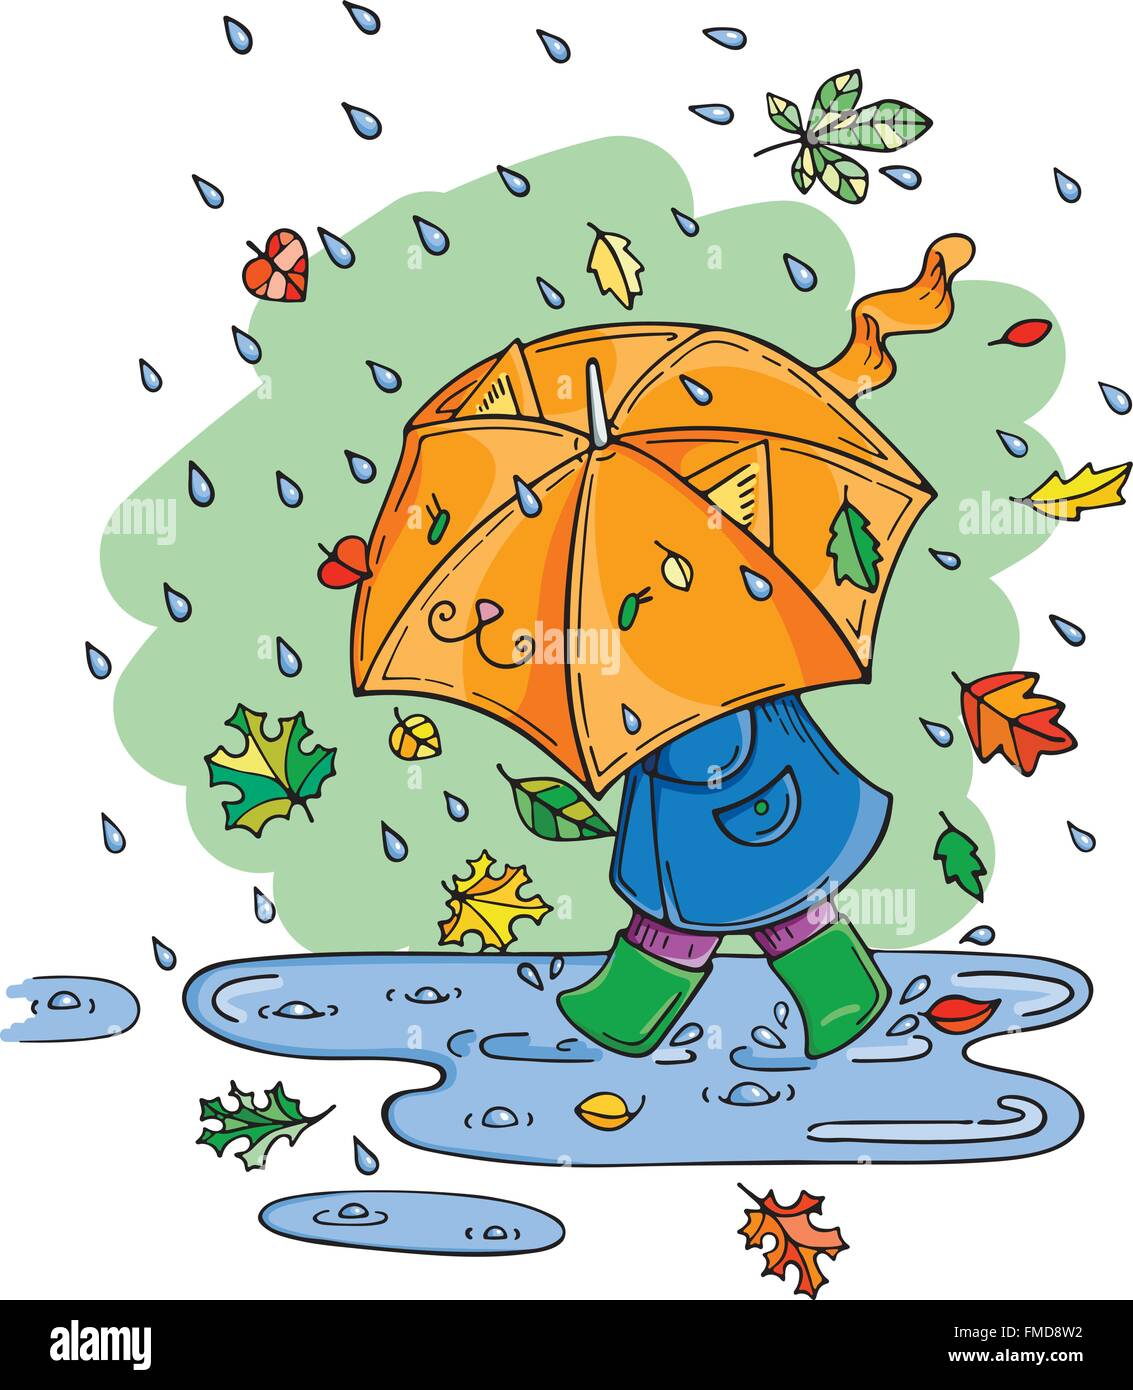 rainy day child umbrella cut out stock images u0026 pictures alamy